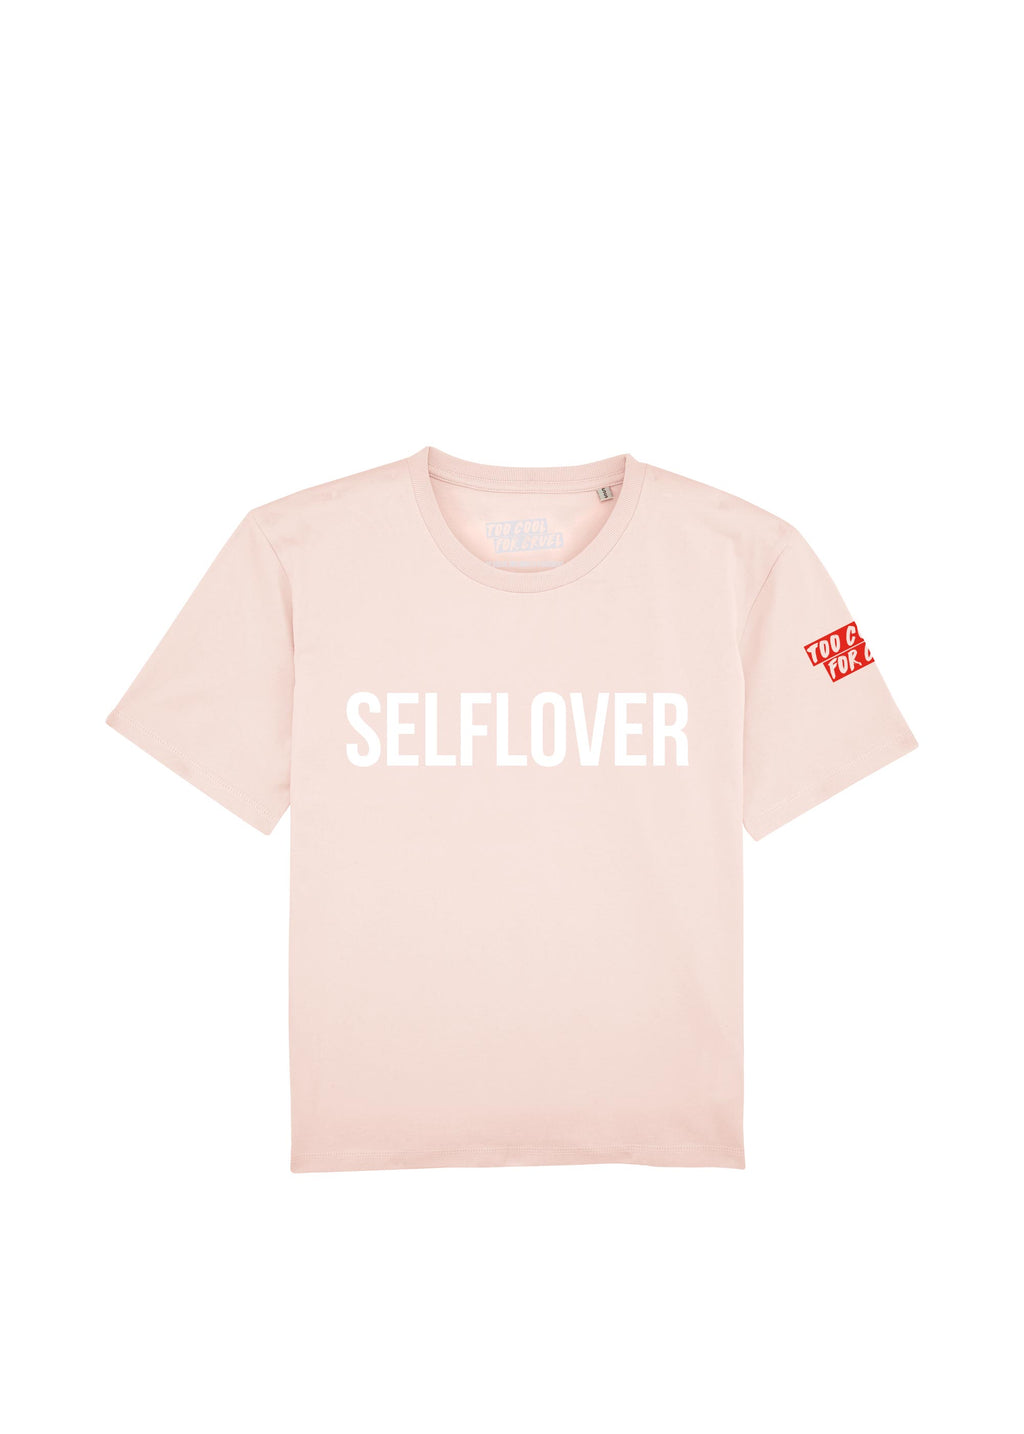 SELFLOVER SHIRT SUMMER EDITION (women)